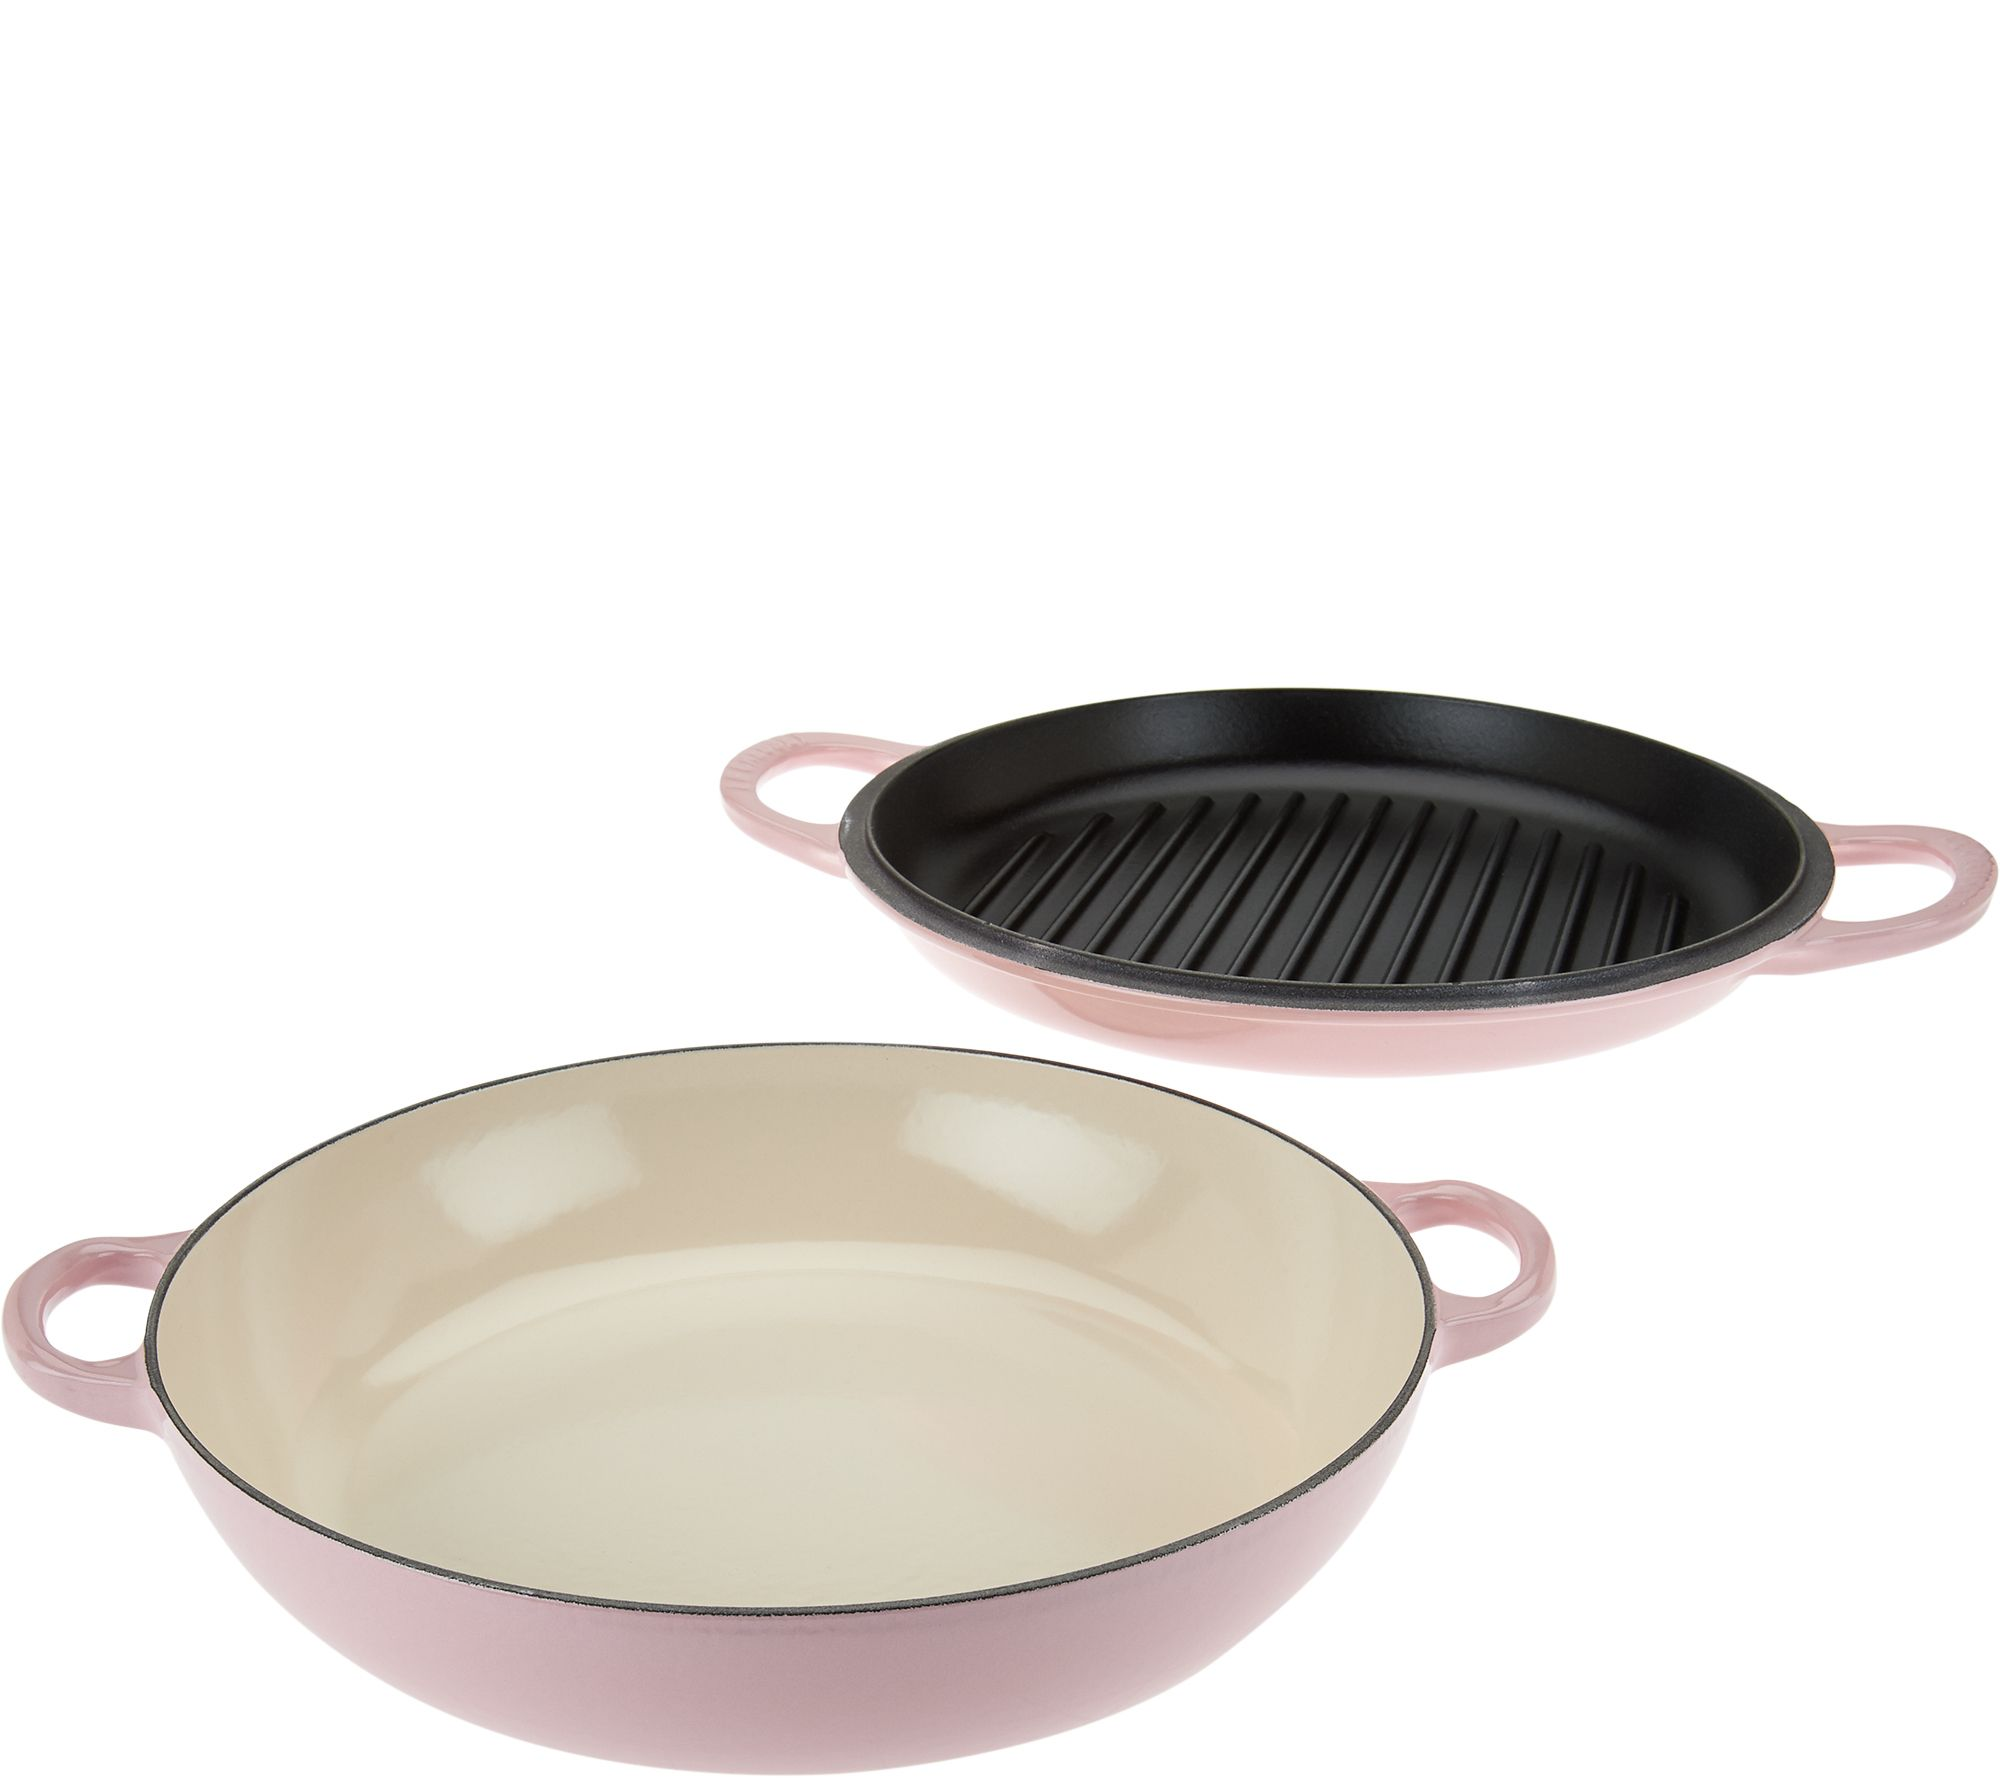 le creuset 3 5qt cast iron multi function pan with grill lid